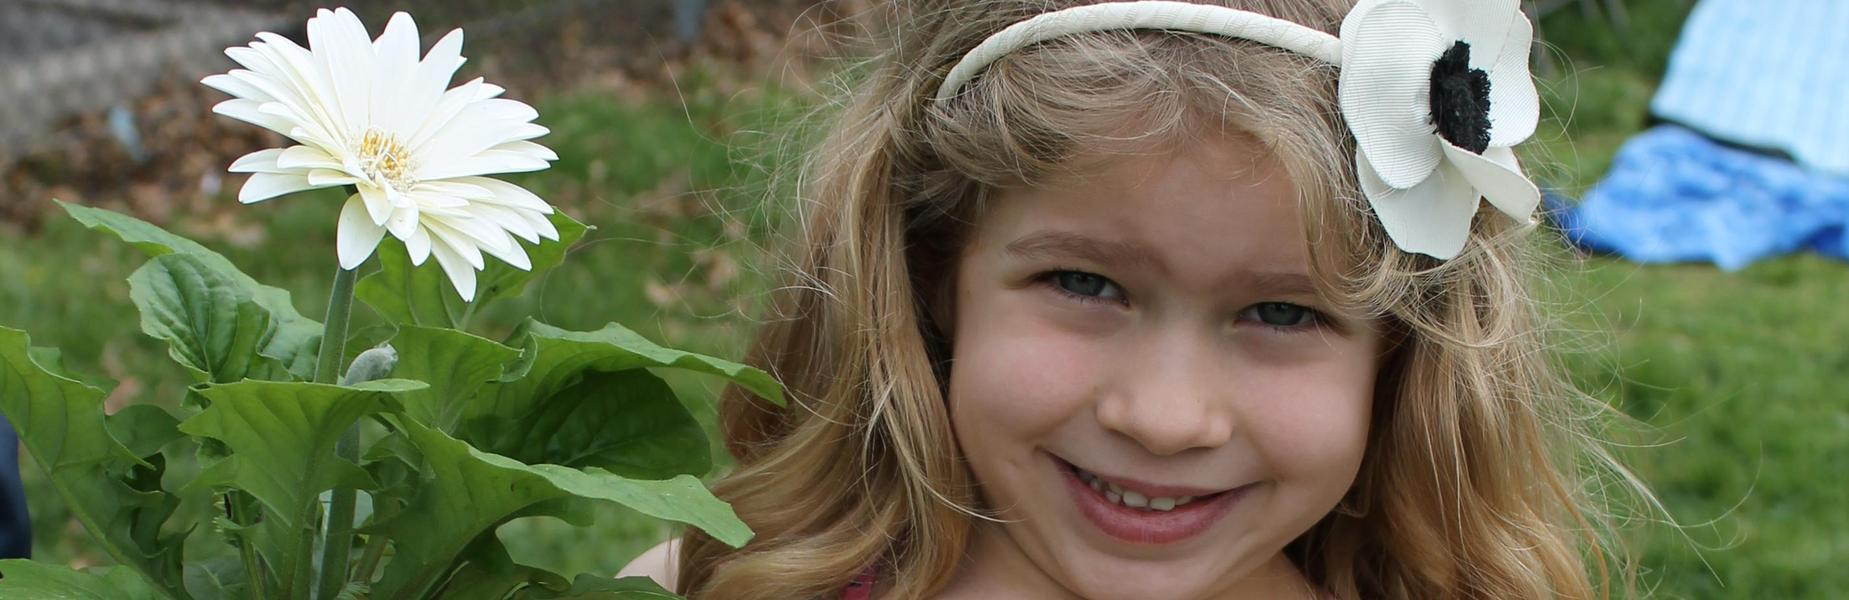 Kindergartner with white flower headband holds white daisy potted plant.